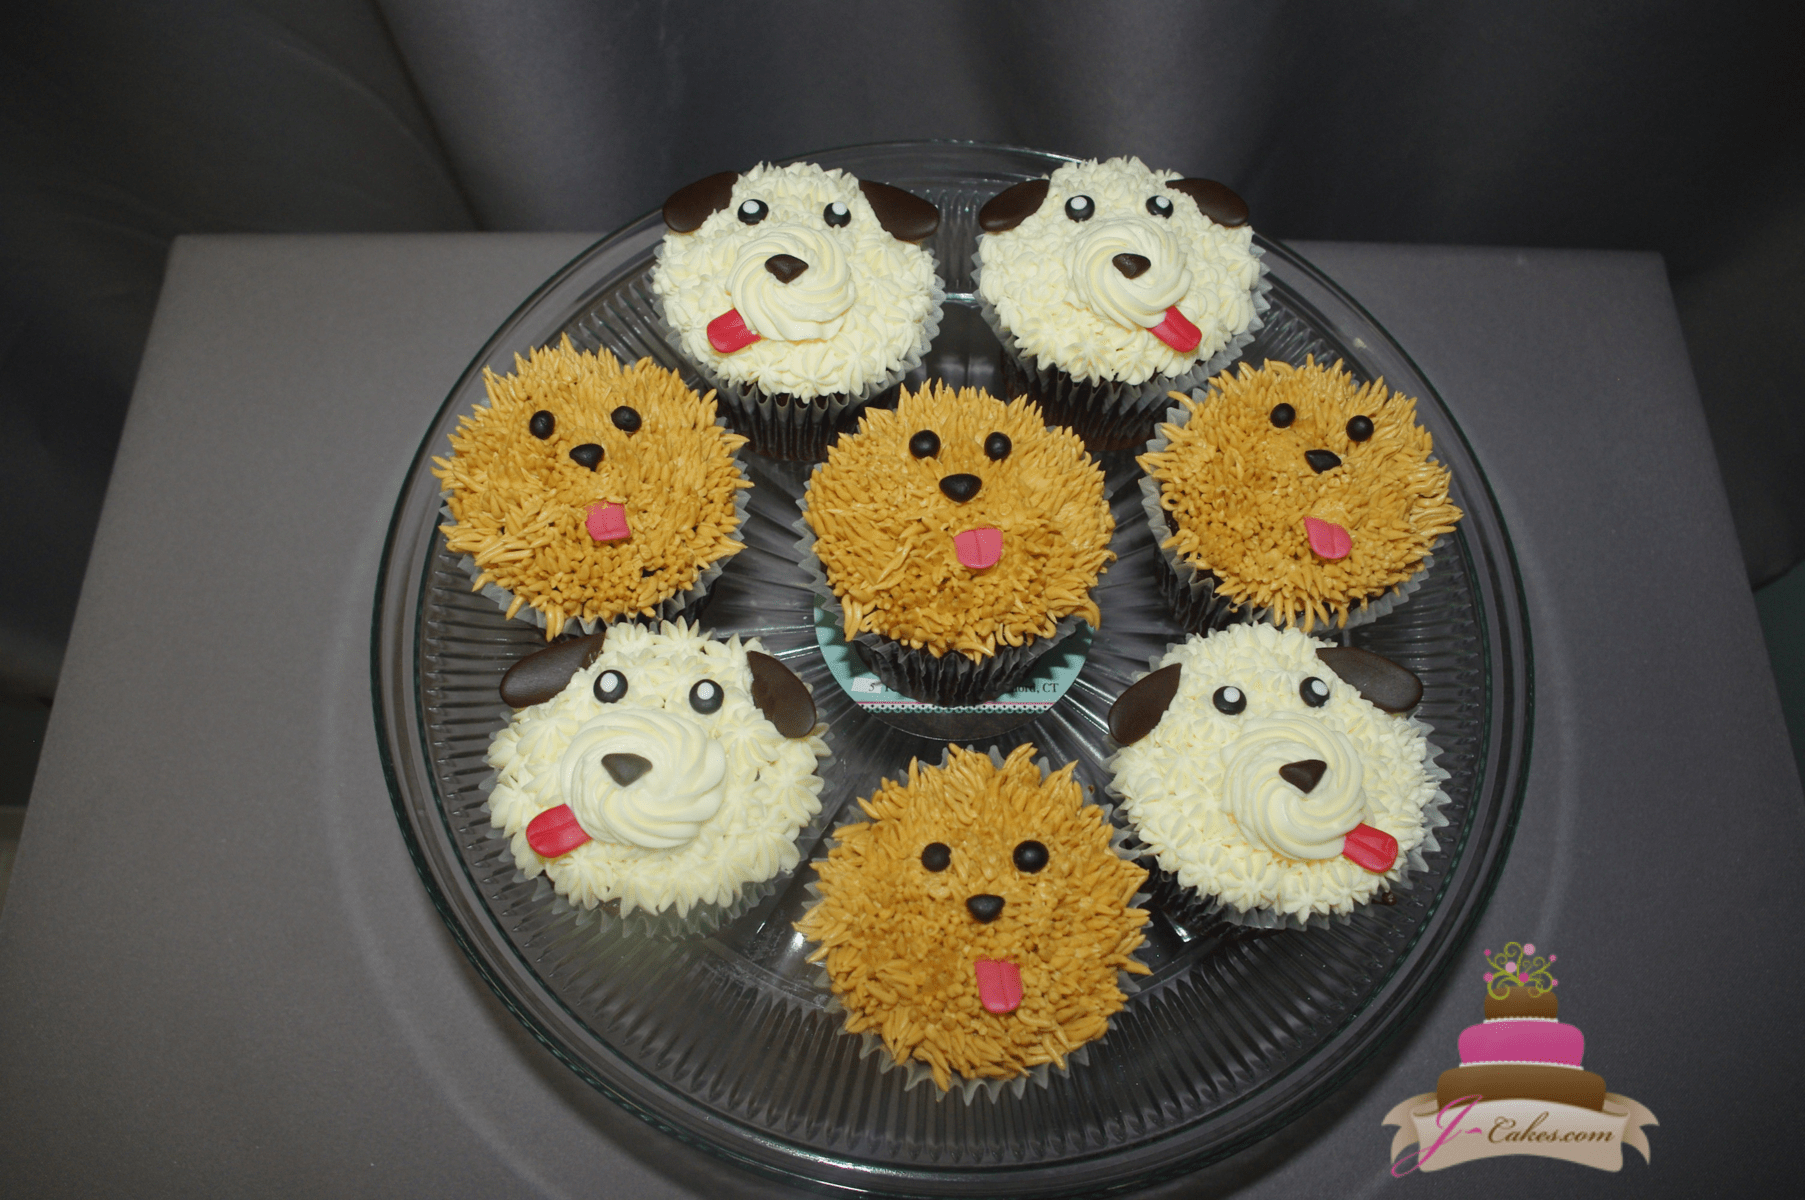 (653) Puppy Cupcakes